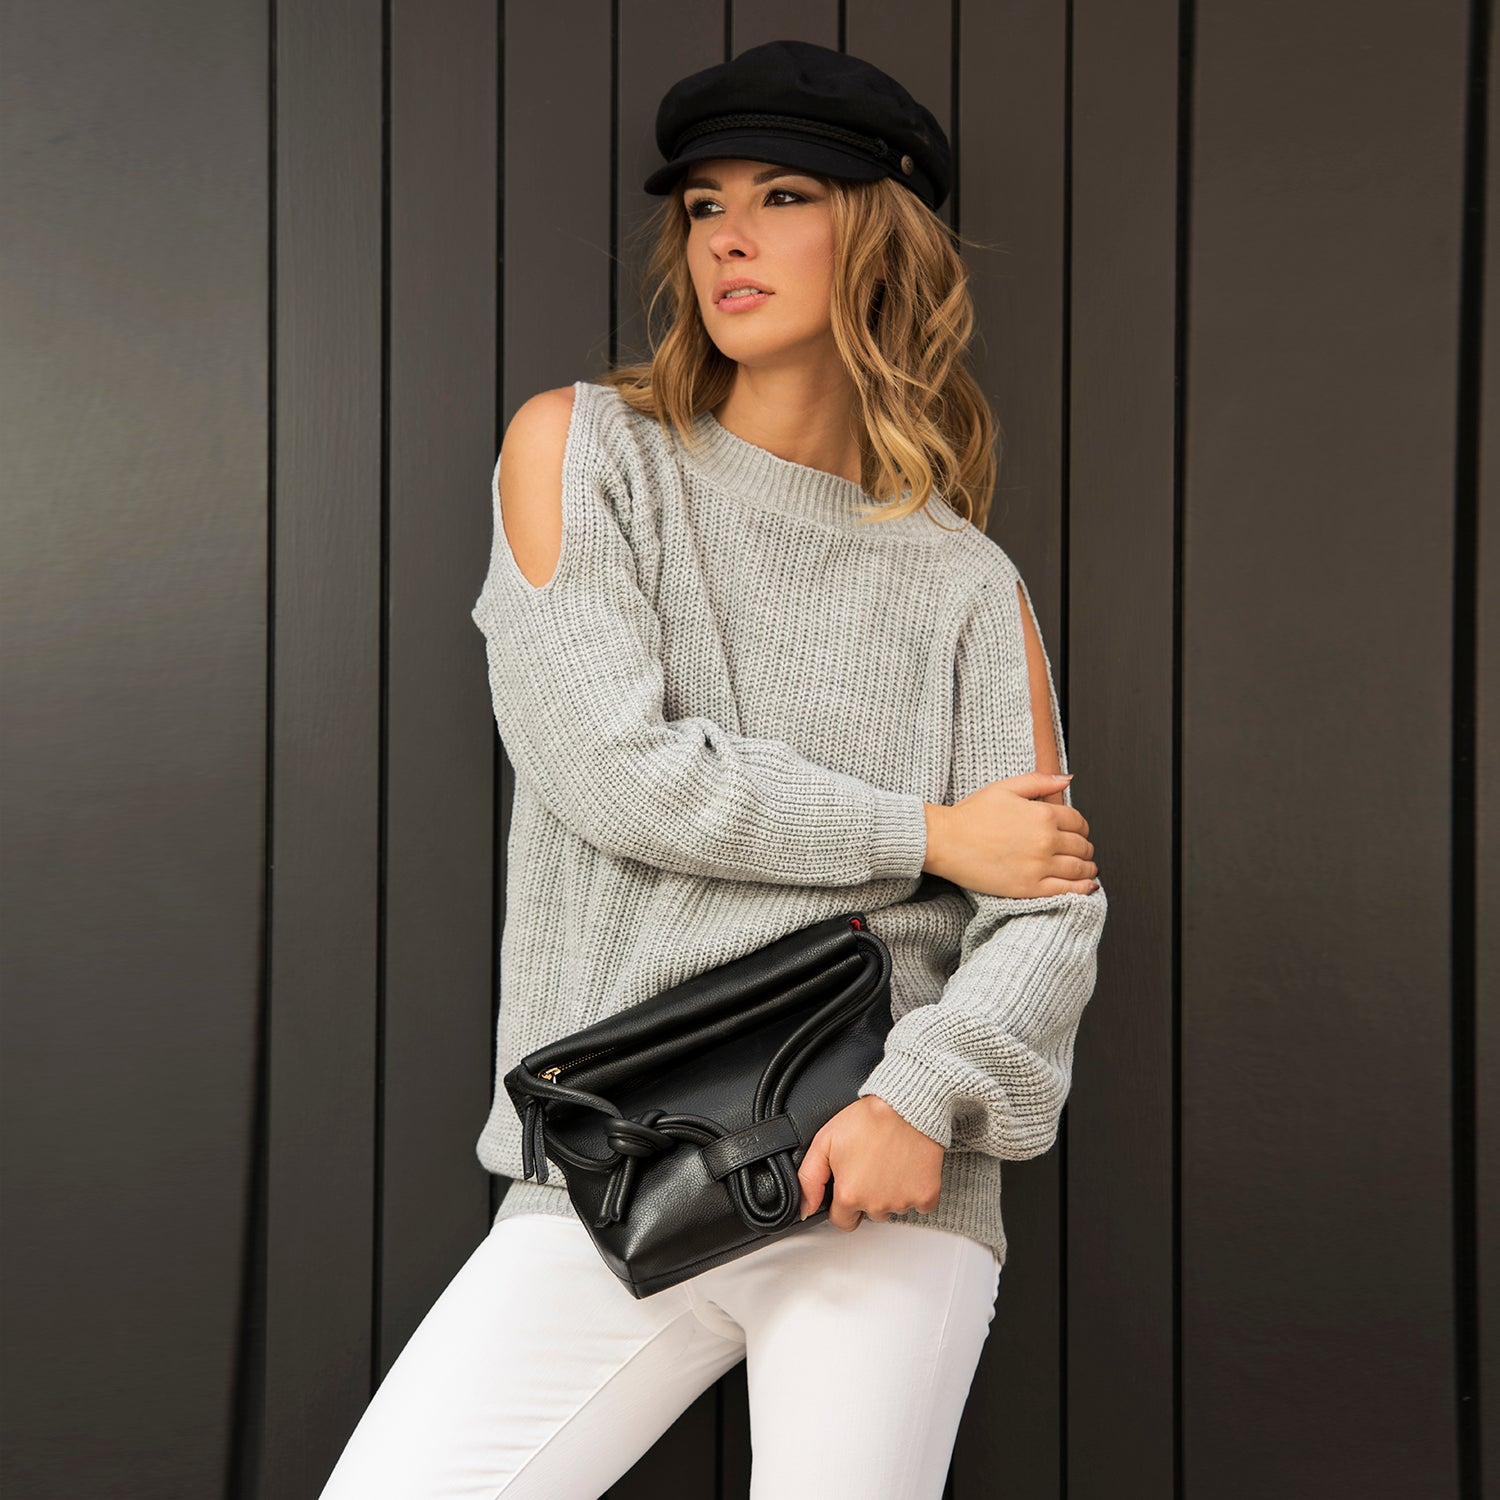 A model wearing convertible leather small black shoulder bag as a evening clutch using its roll down feature.